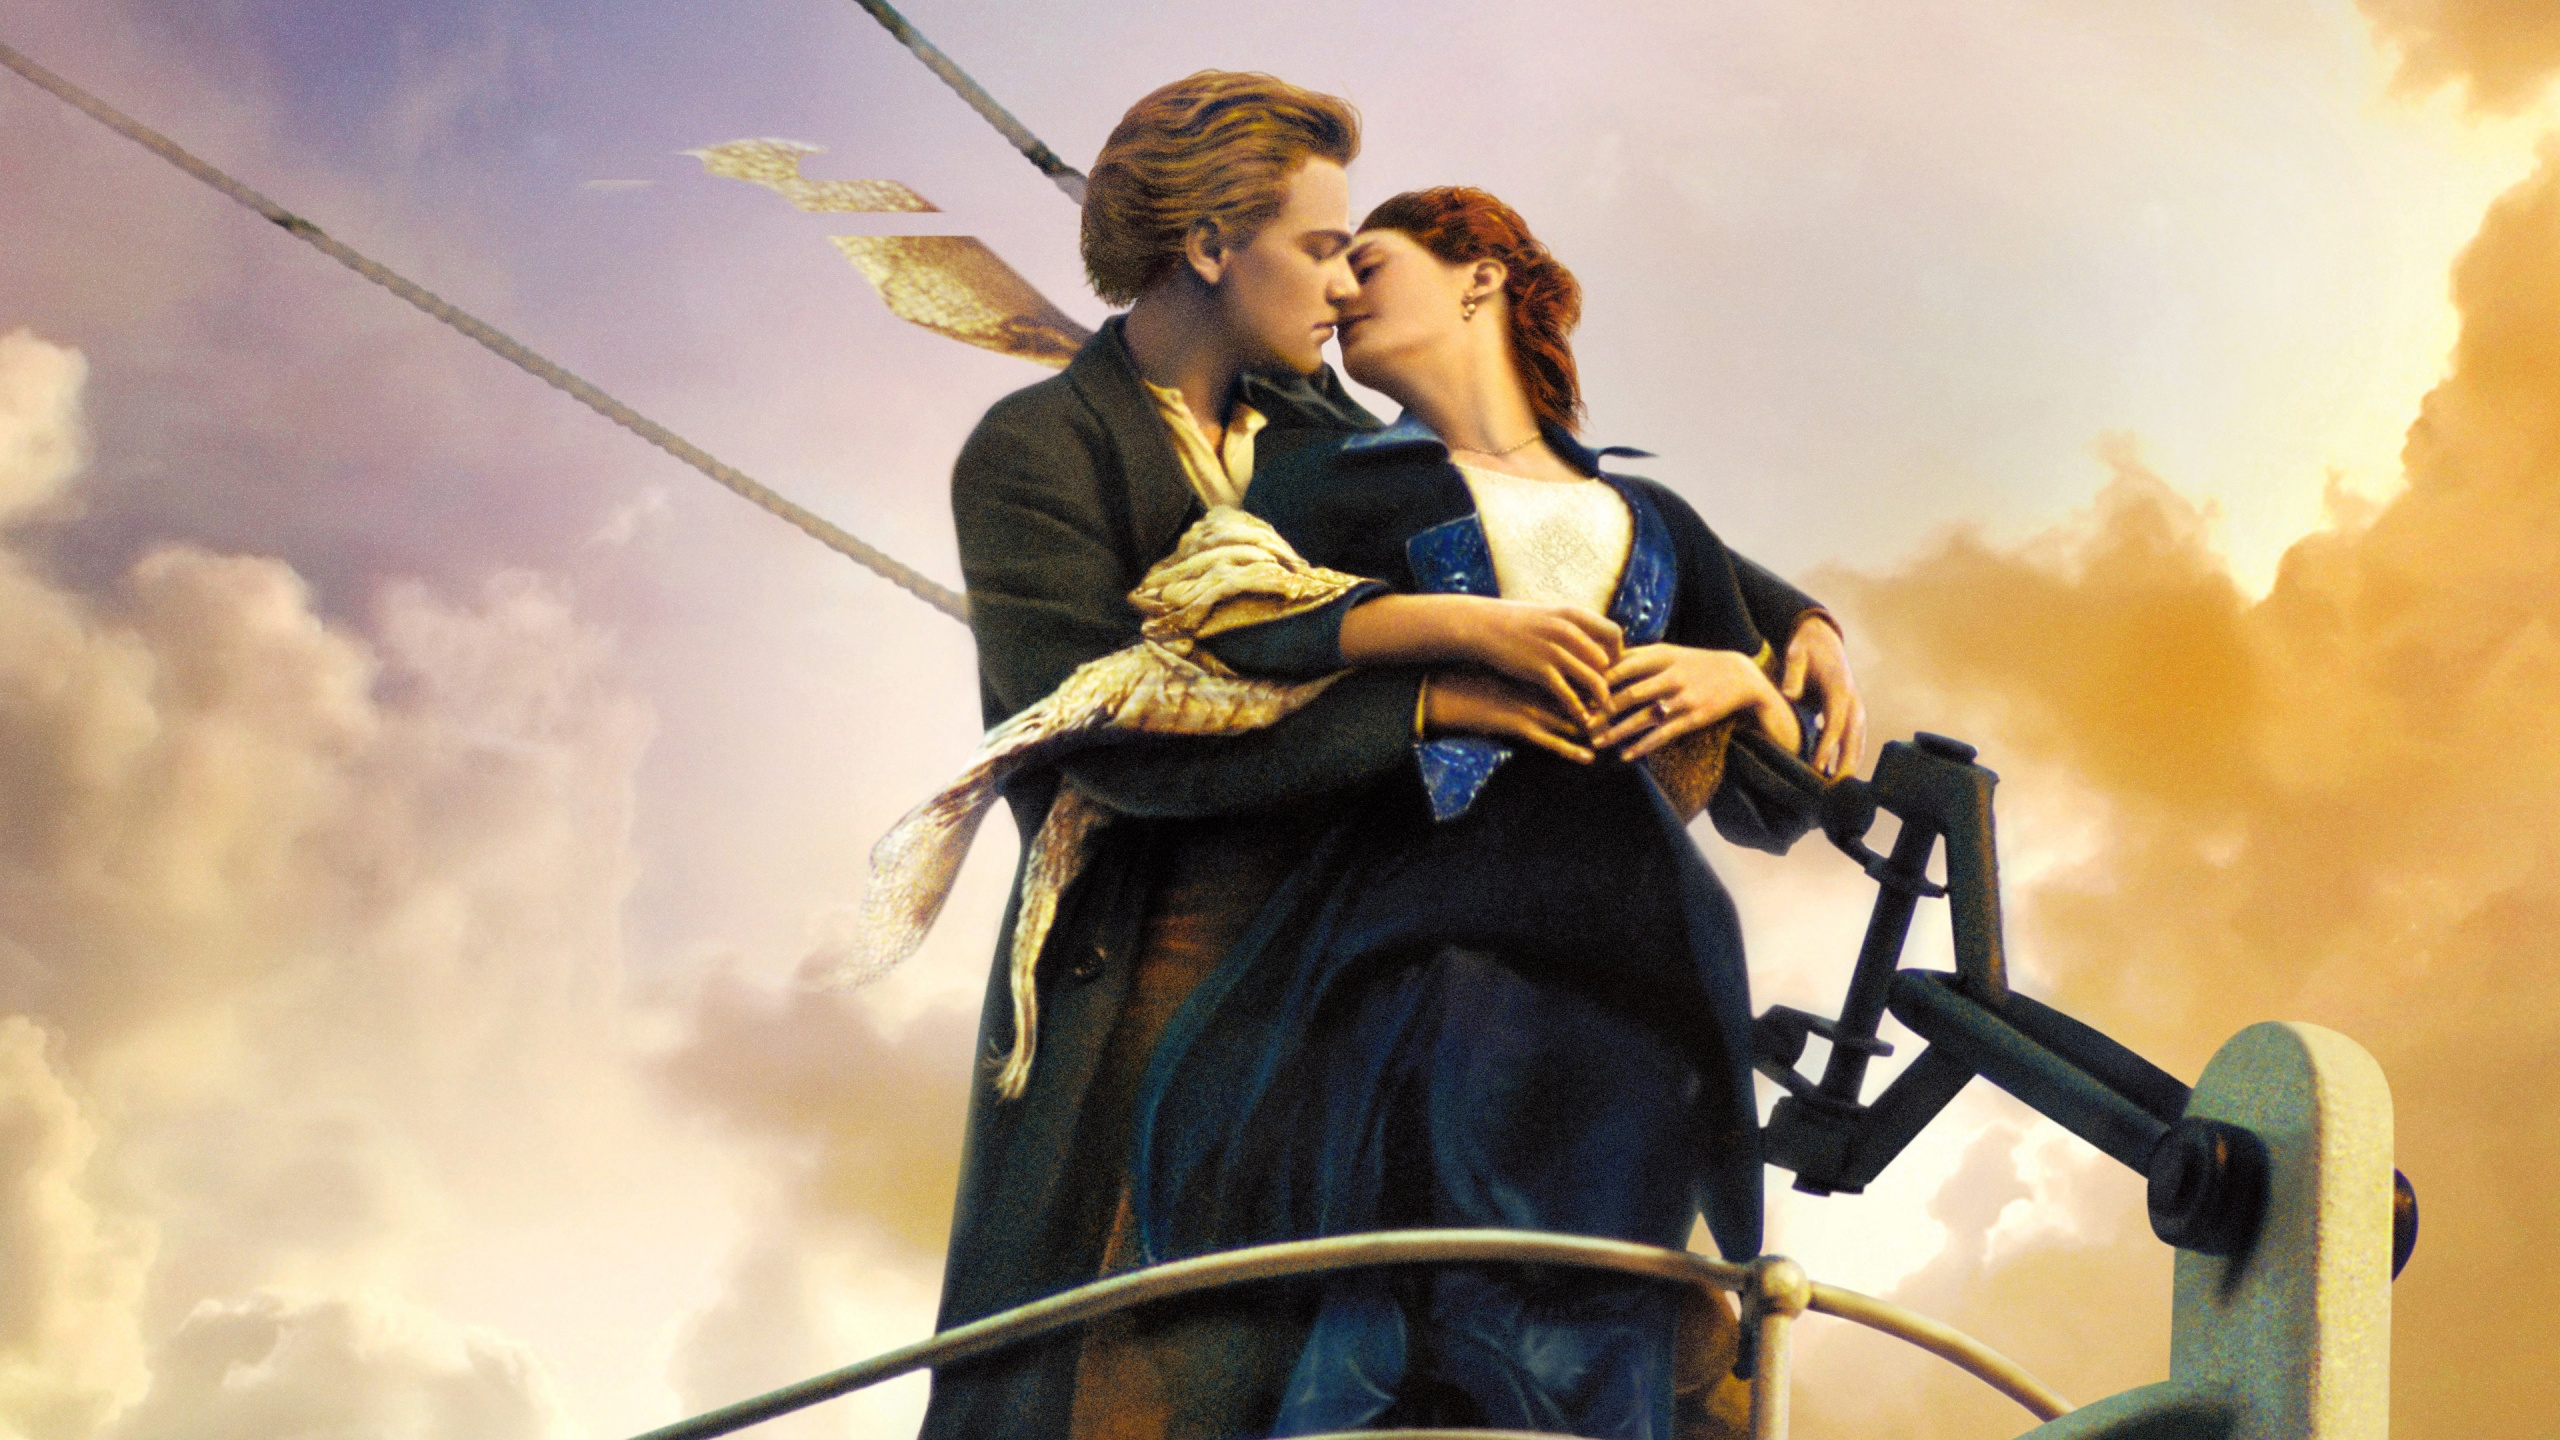 Titanic kiss wallpapers in jpg format for free download.